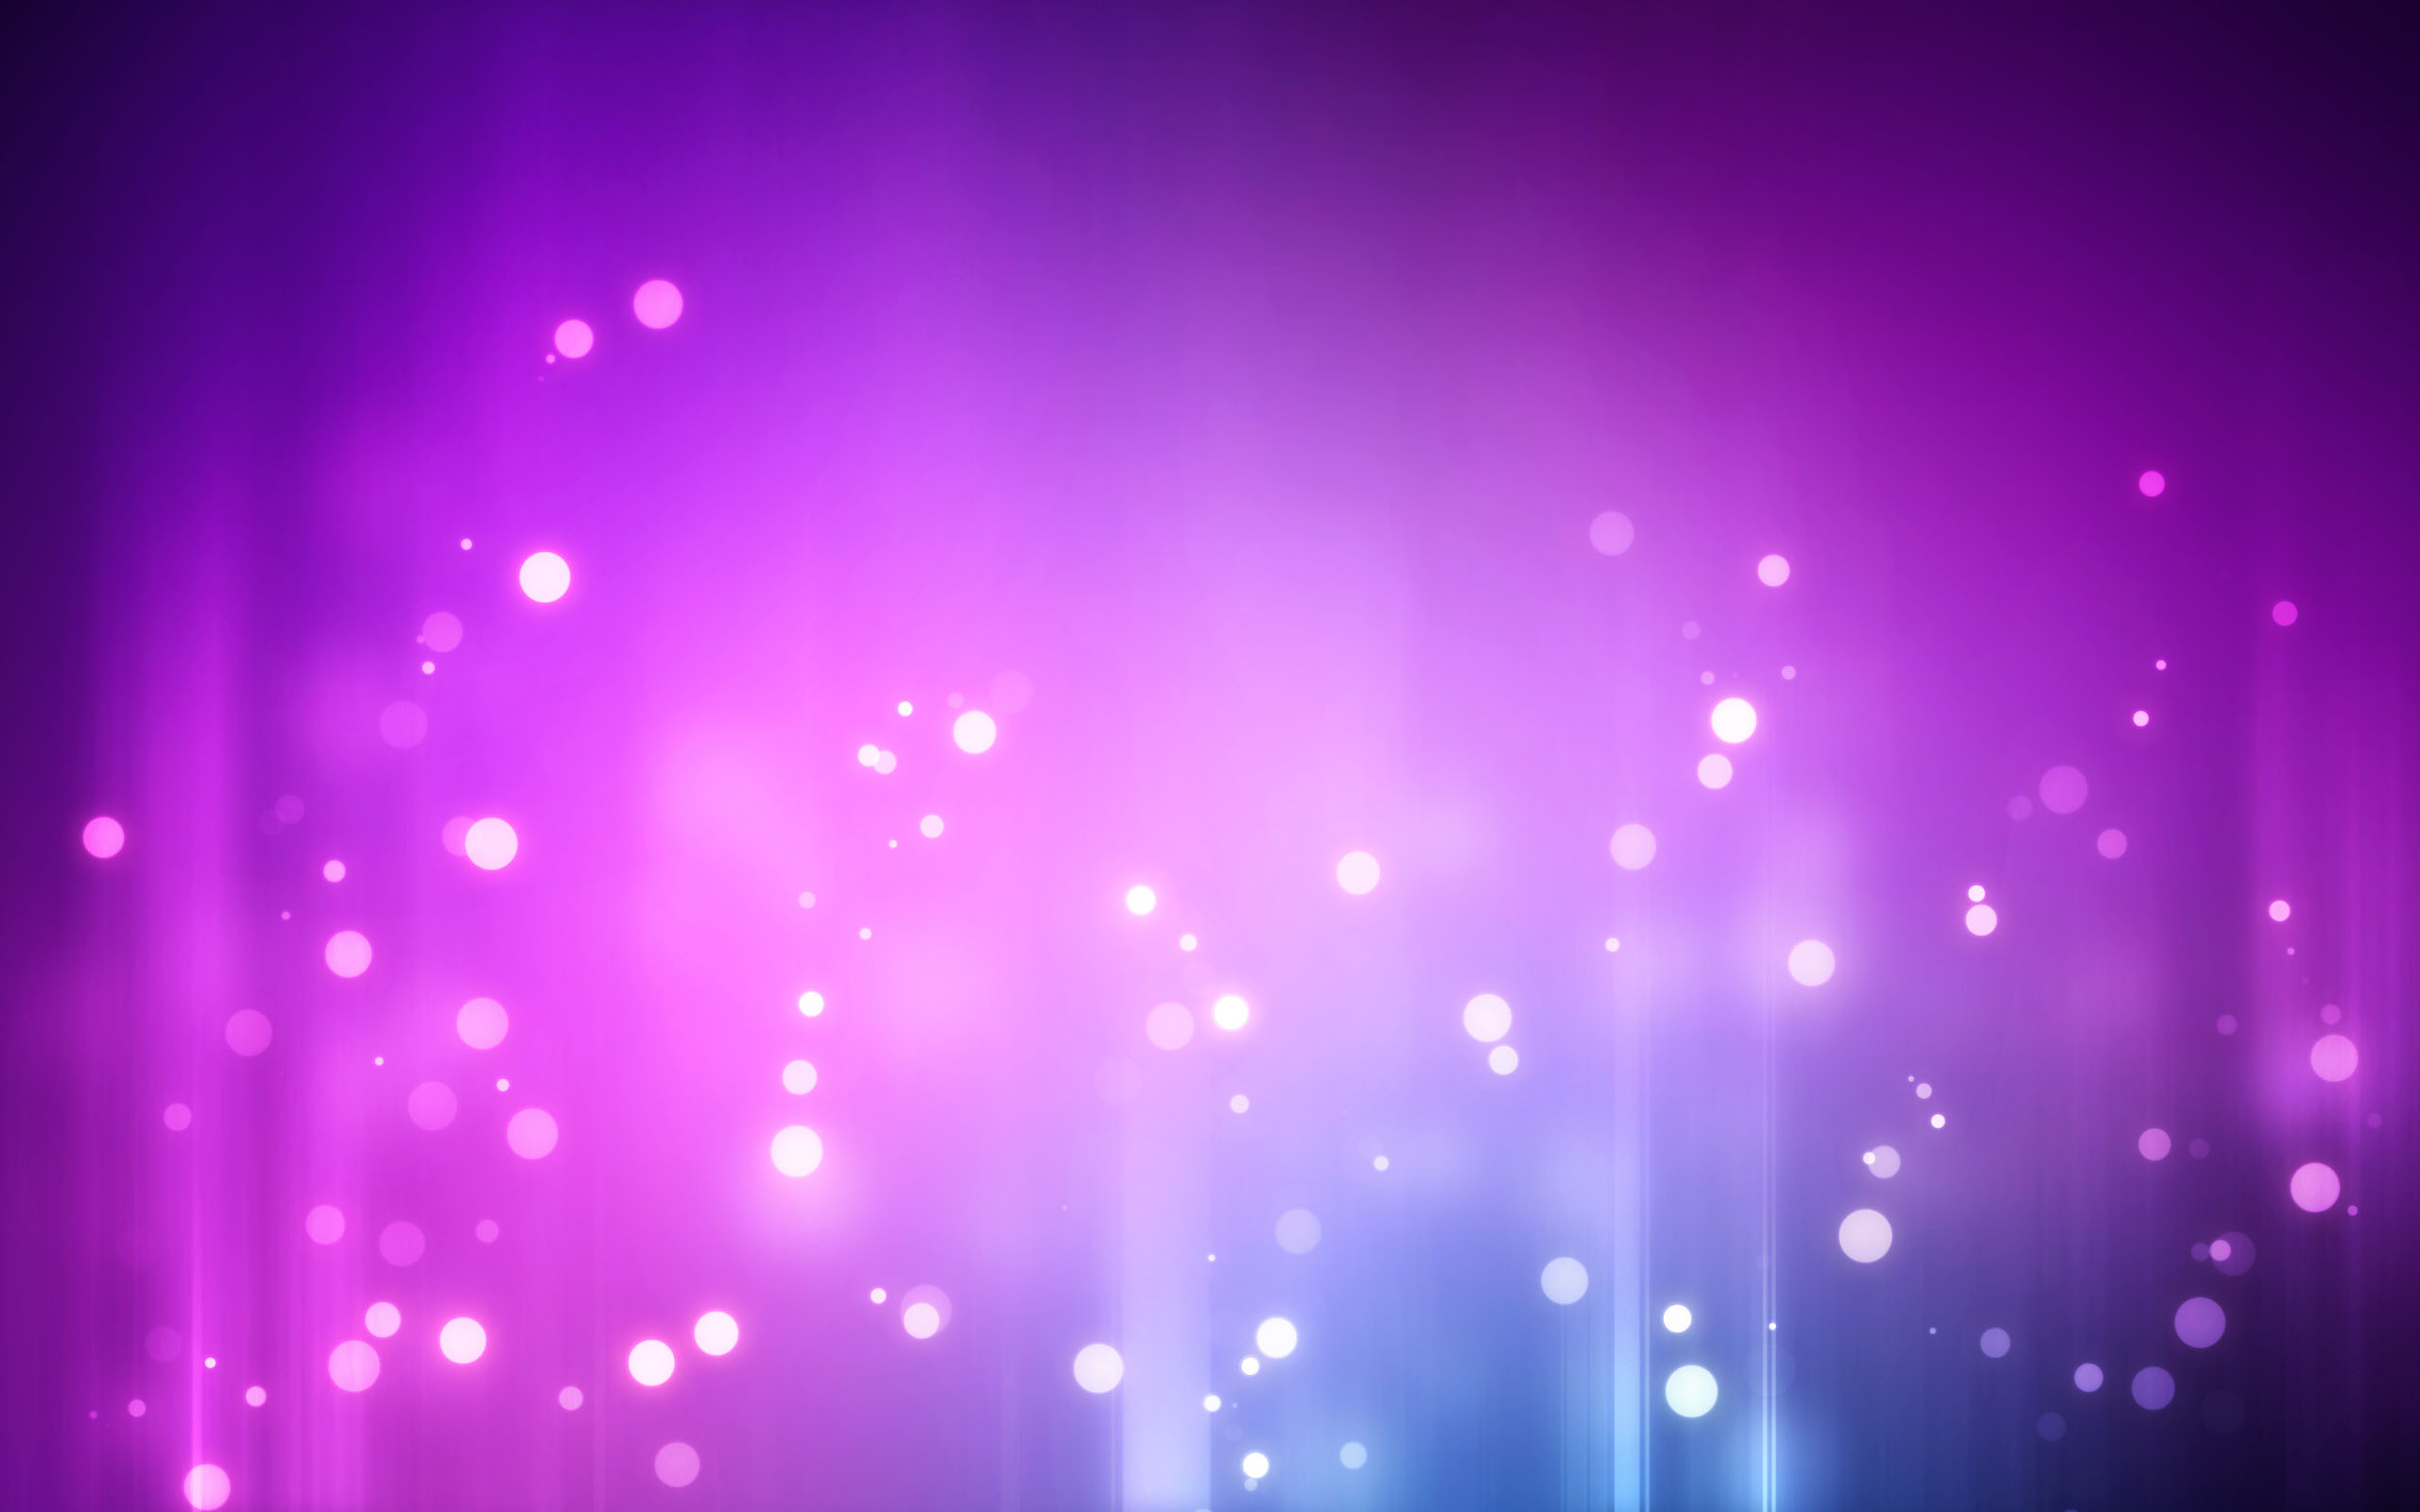 the wallpaper---White Spots in Different Sizes  Background is Purple    Light Purple Wallpaper Design